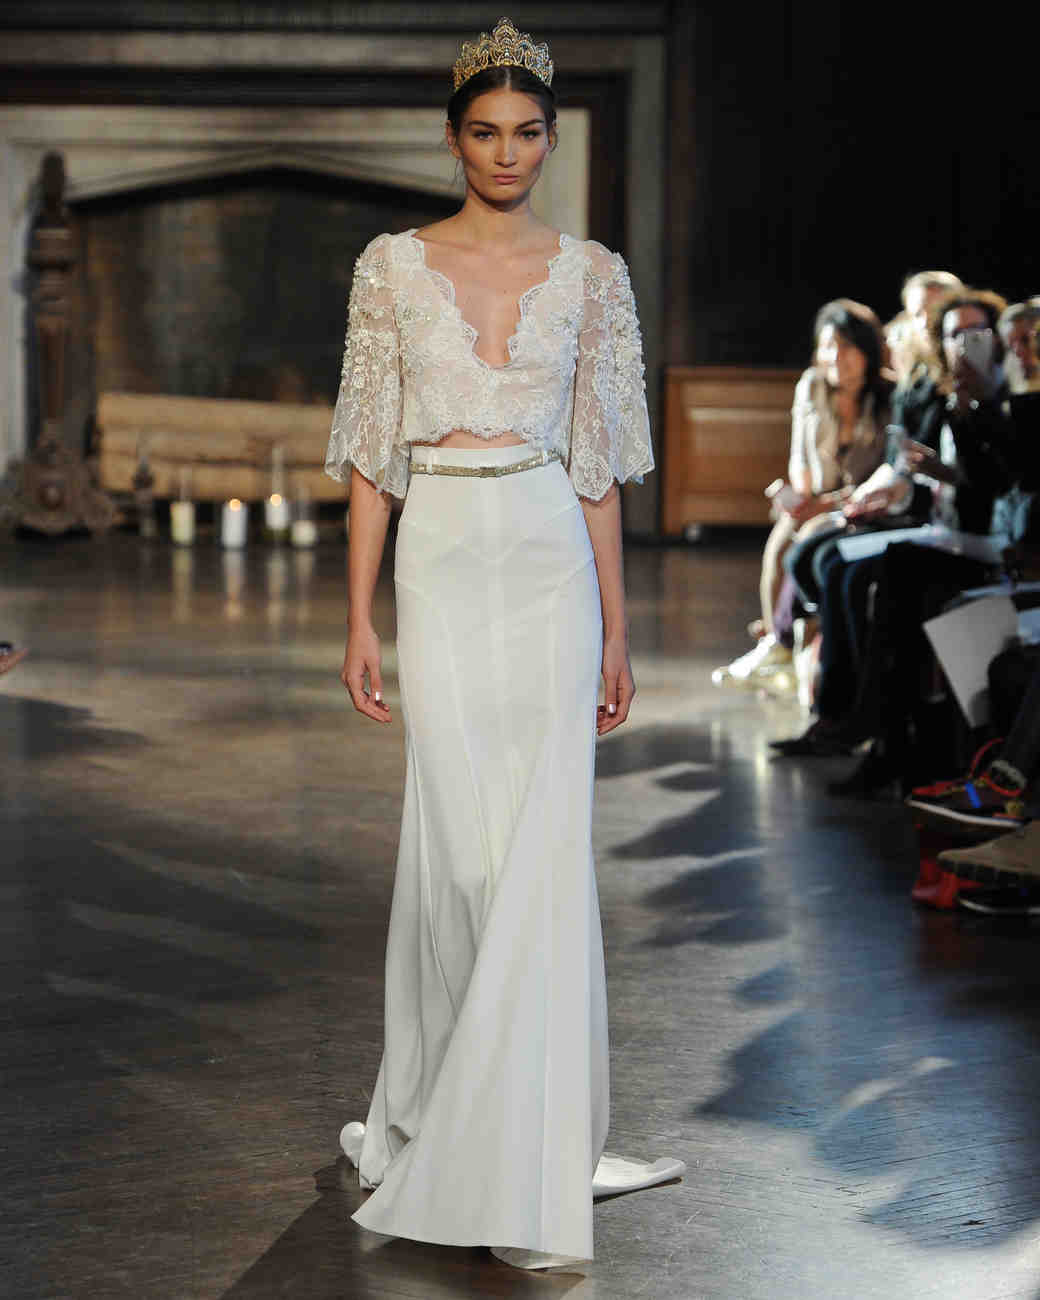 inbal-dror-alt-fall2015-wd111654-017.jpg